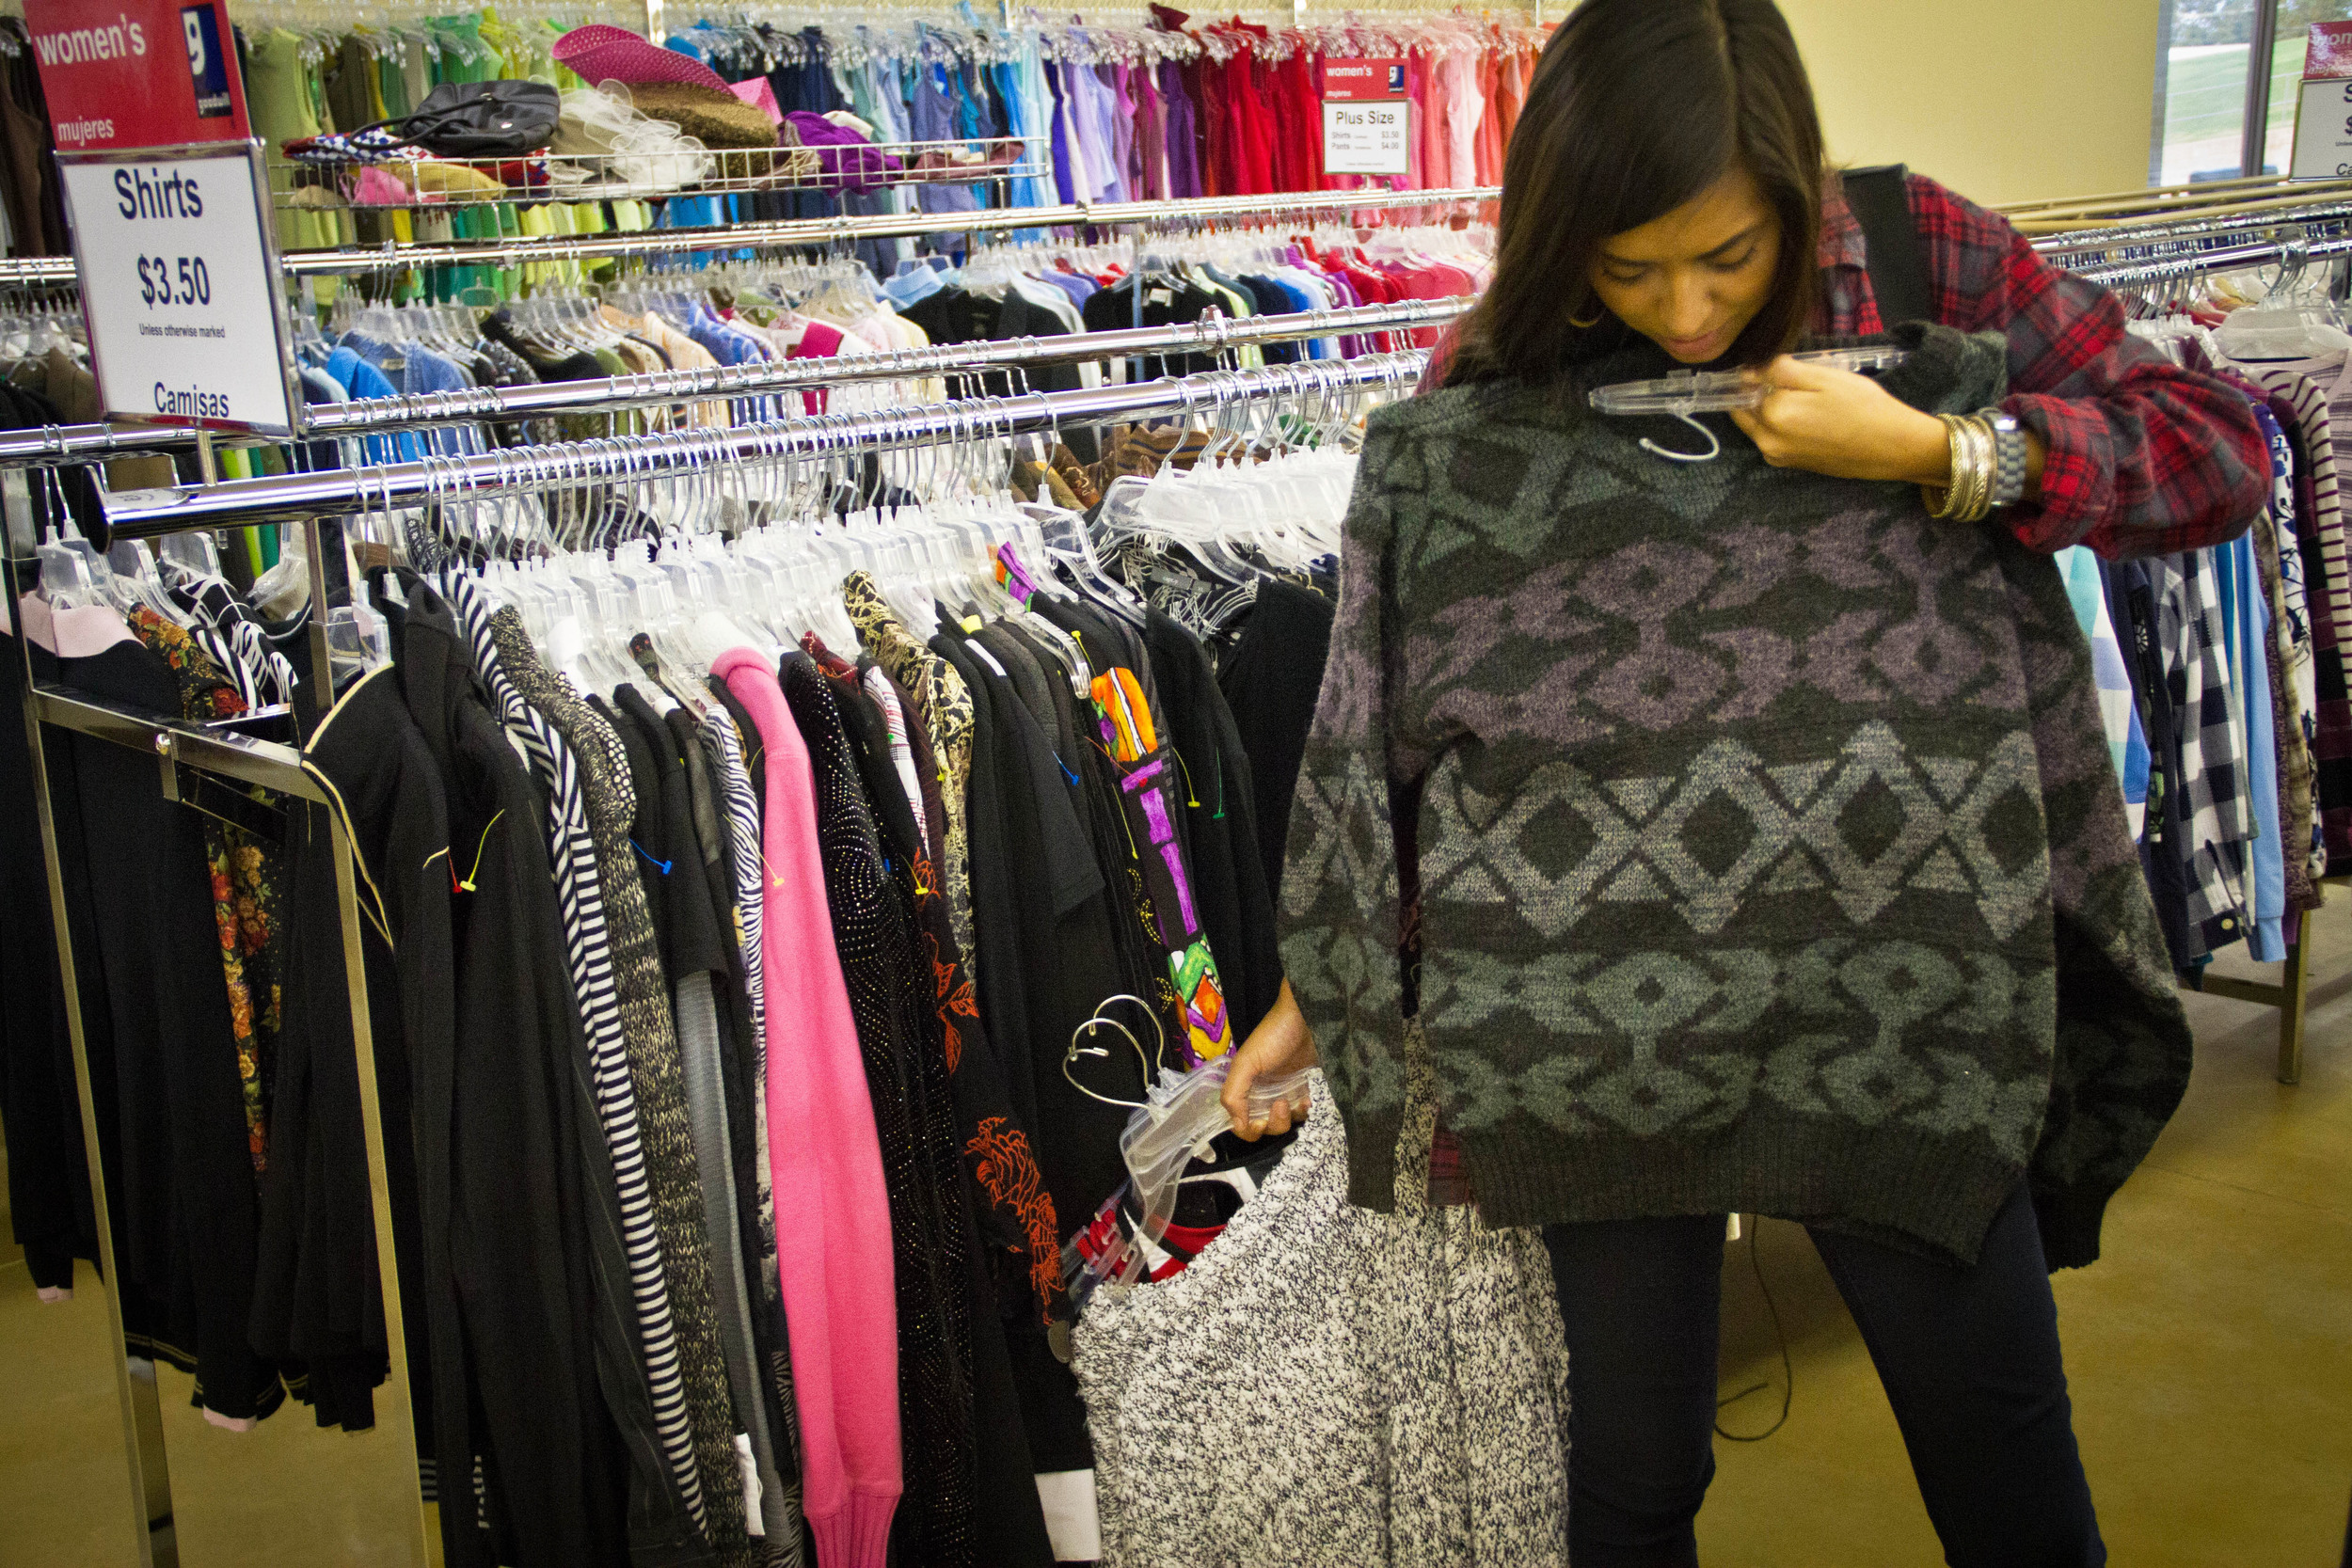 "University of Arkansas senior, Alexis Caldera, ""always find a good deal at Goodwill,"" she said. Shopping at thrift stores has become popular, as students have taken up ""thrifting,"" drawing from the popularity of websites and television reality shows."